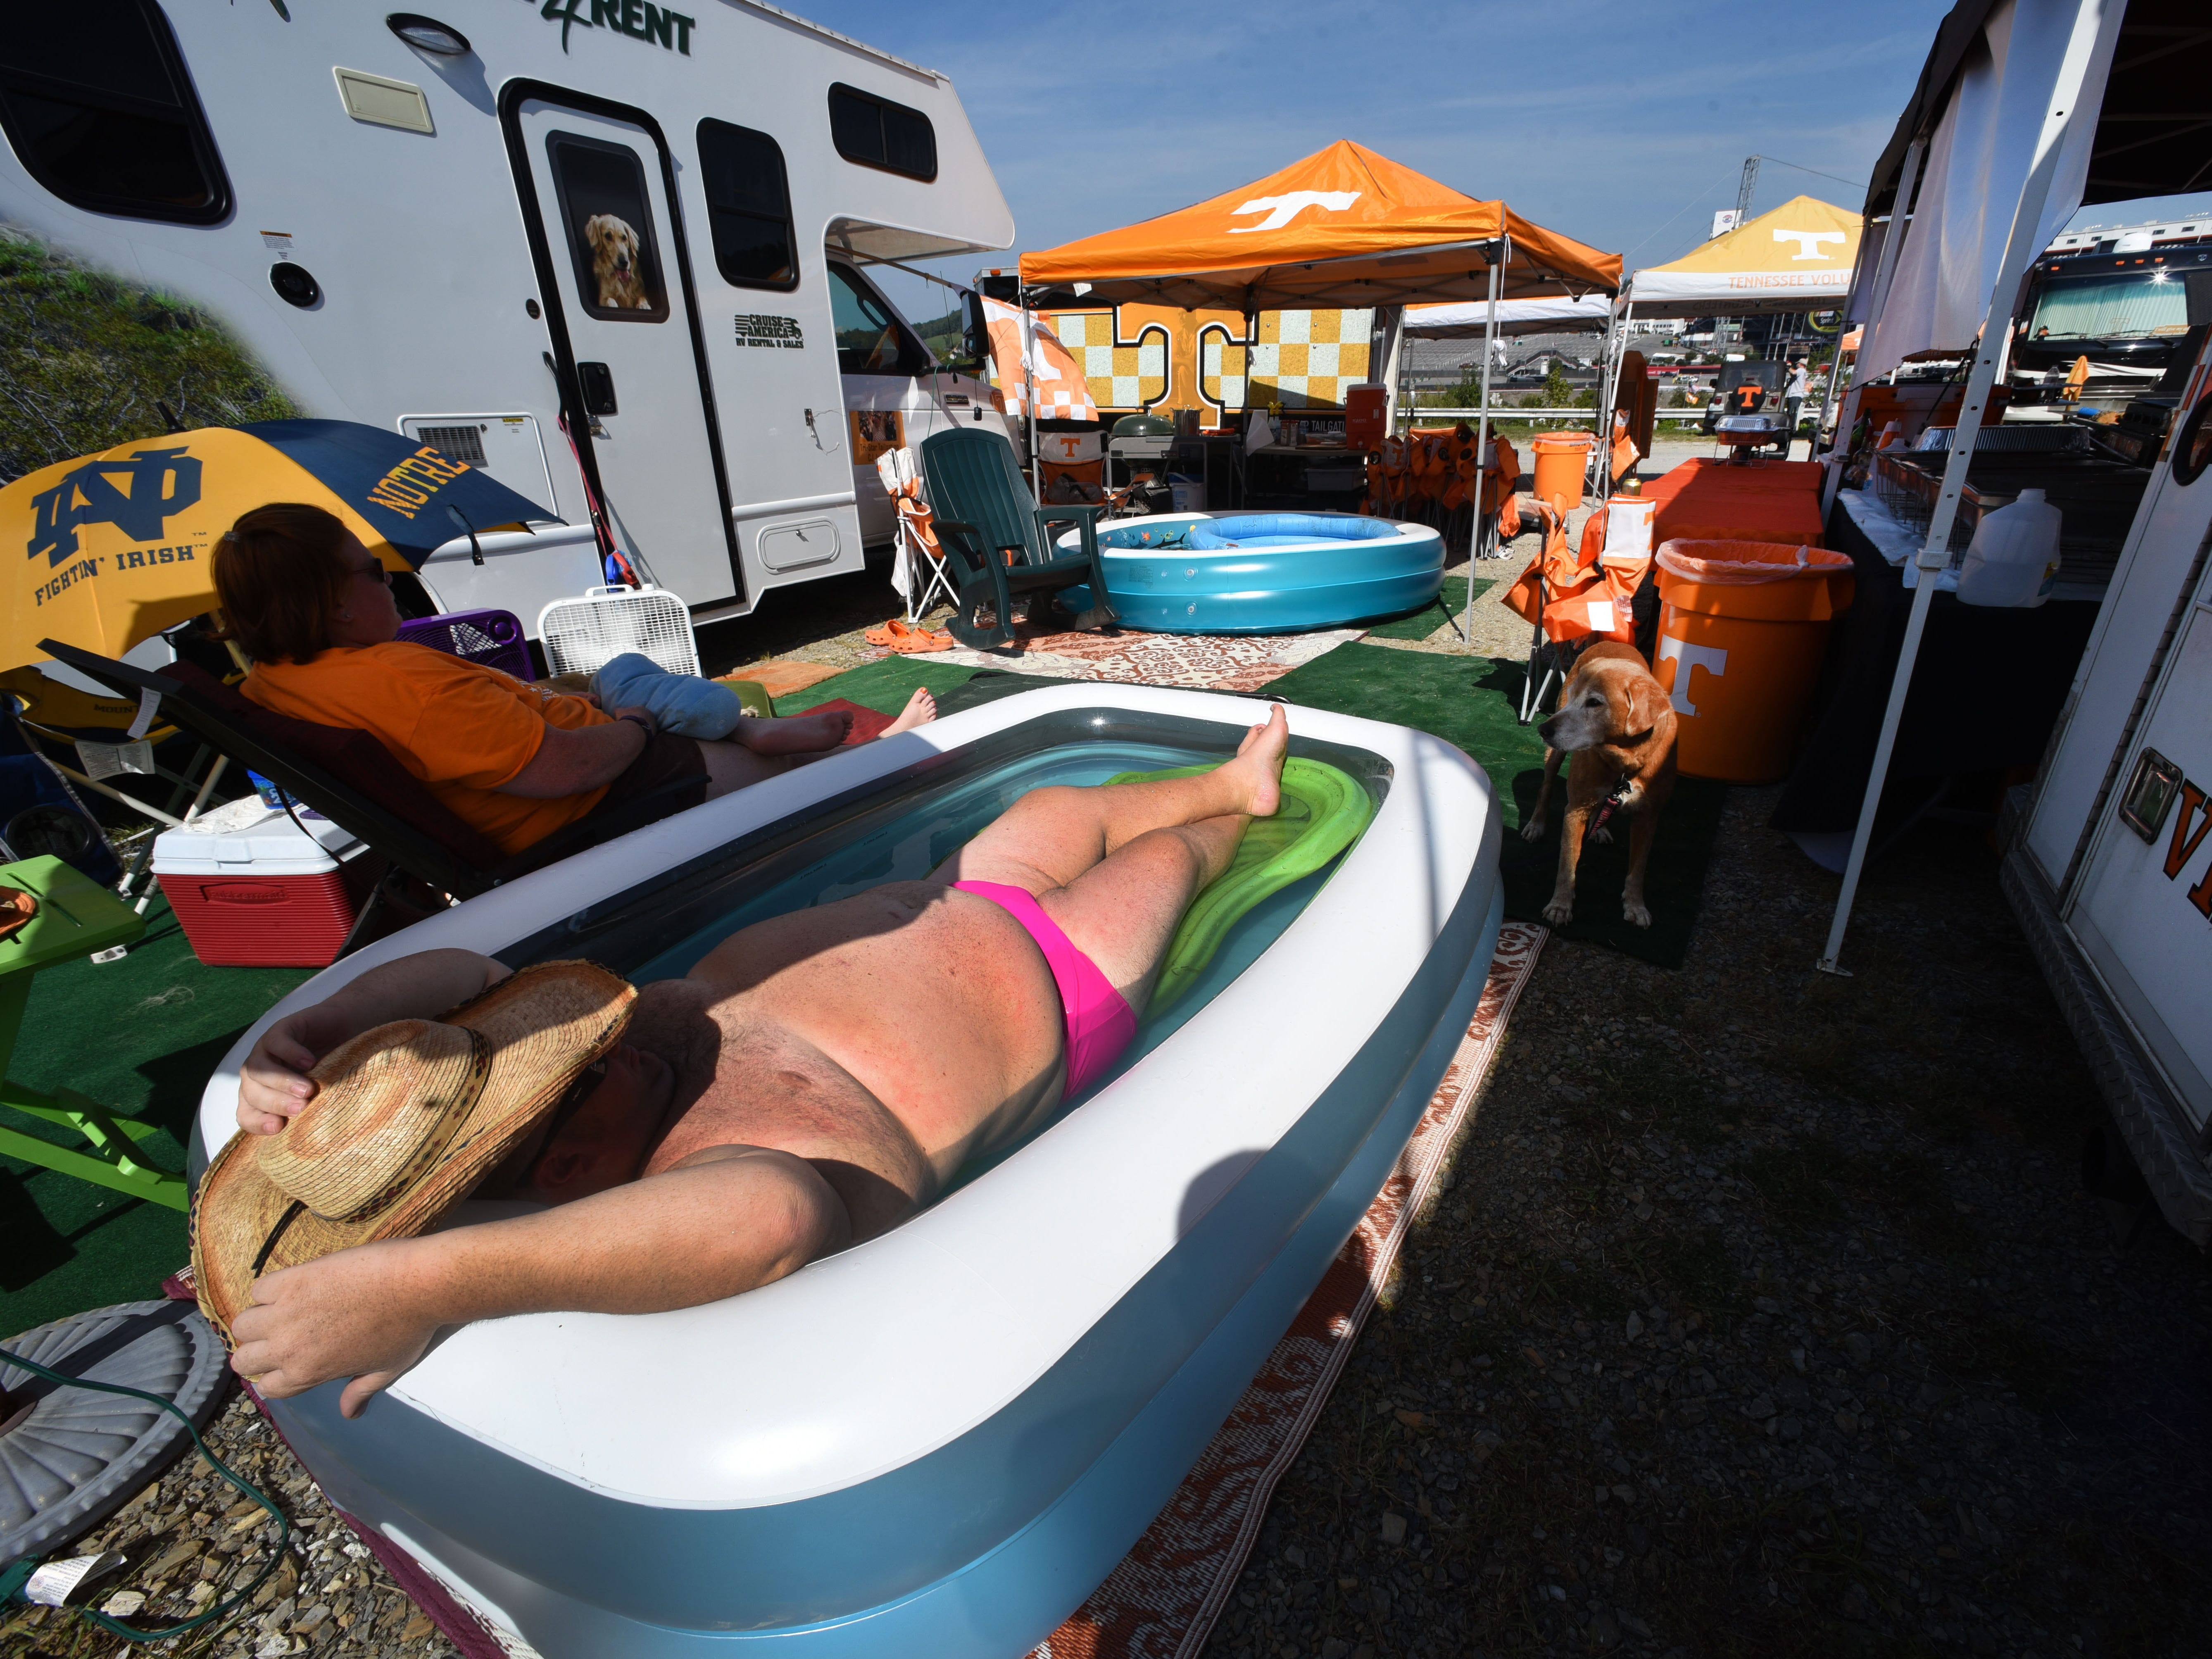 C.J. Jackson, cooling off in his pool, and his friend Kristen Kasko, left, from Tri-Star Tailgating arrived Thursday, September 8, 2016 to enjoy camping outside the Bristol Motor Speedway for the Battle At Bristol.